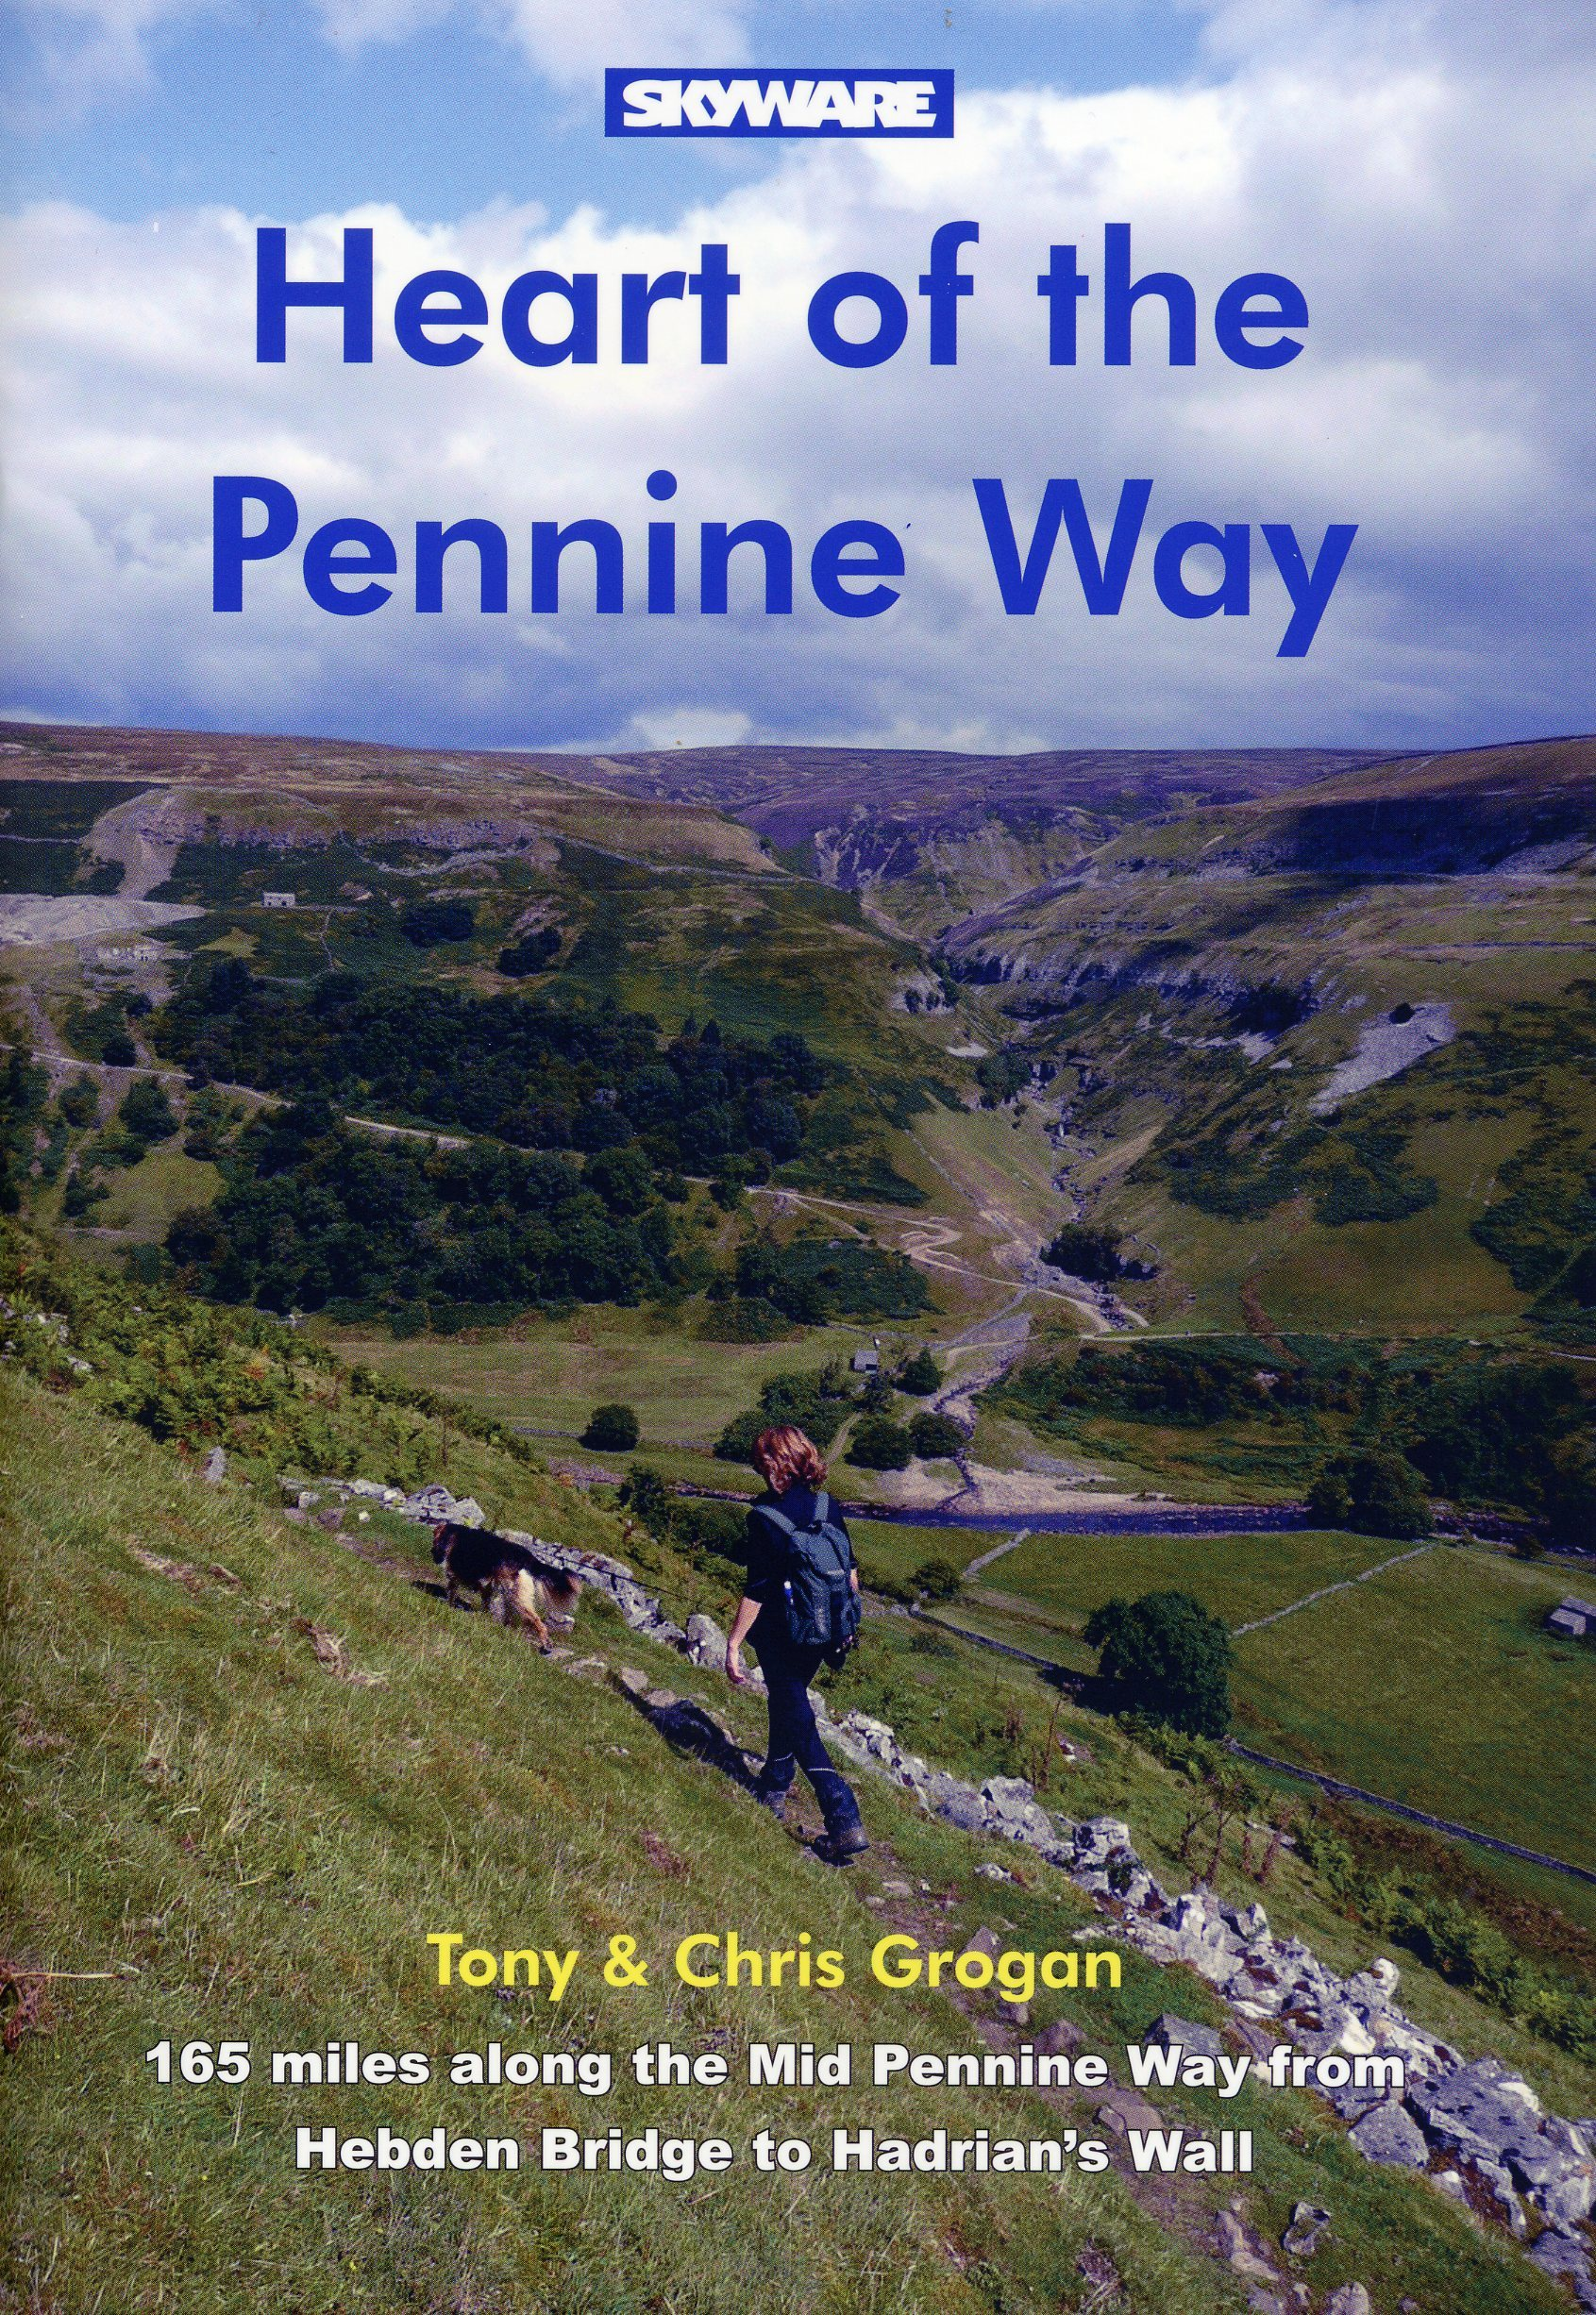 BOOK REVIEW: Heart of the Pennine Way, by Tony and Chris Grogan, £9.99